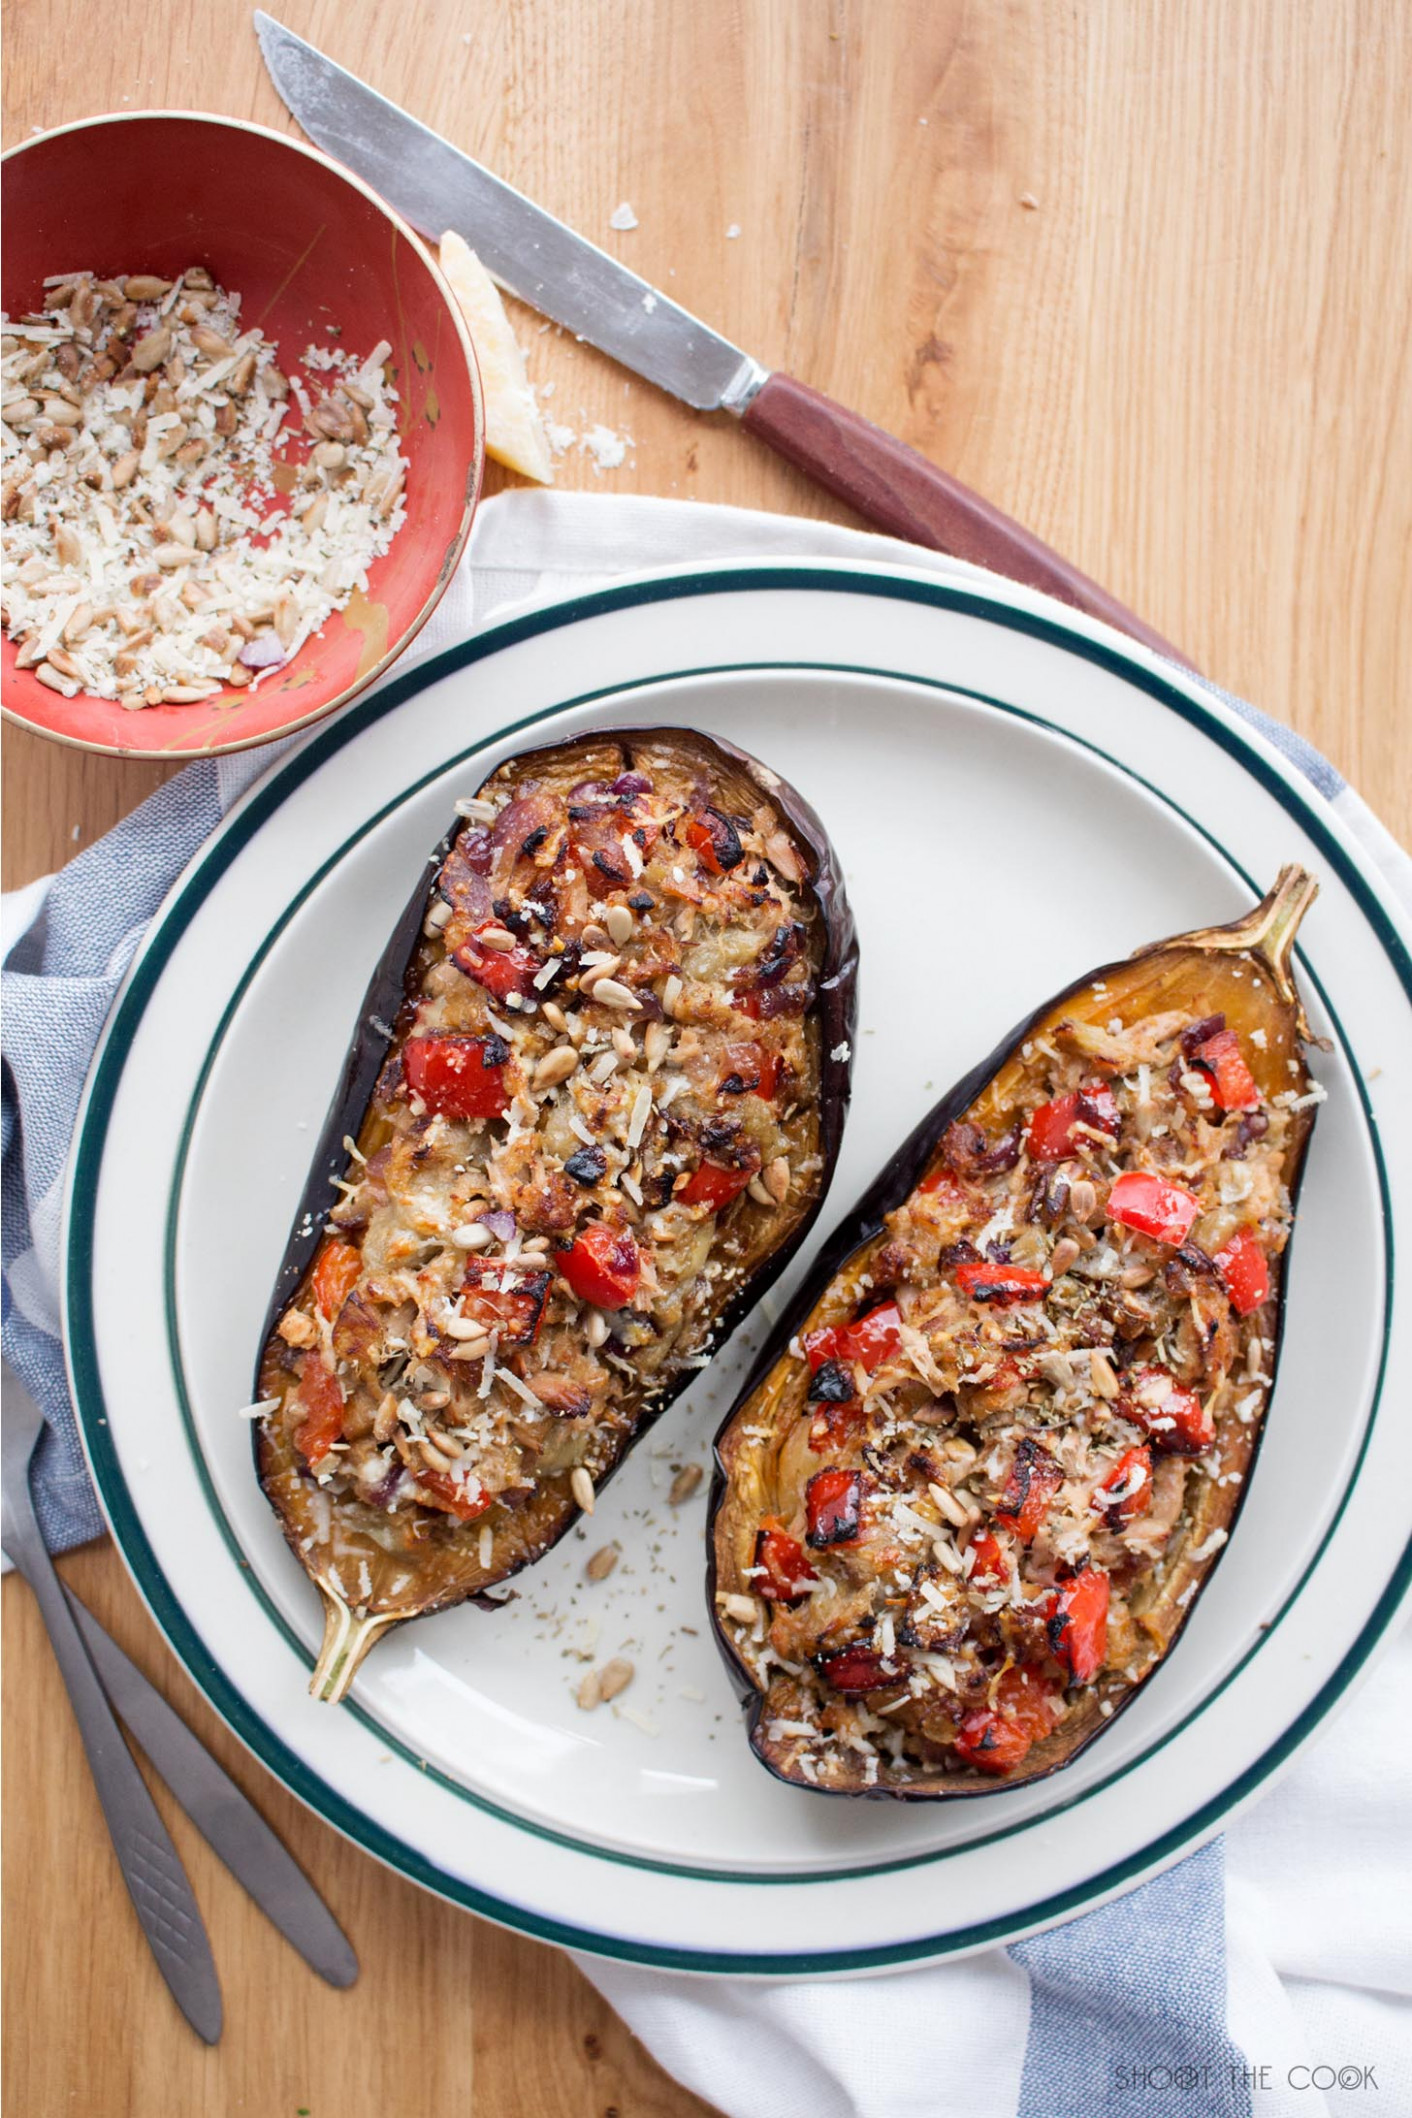 Receta: Berenjenas Rellenas de Carne y Queso - recipes with eggplant healthy